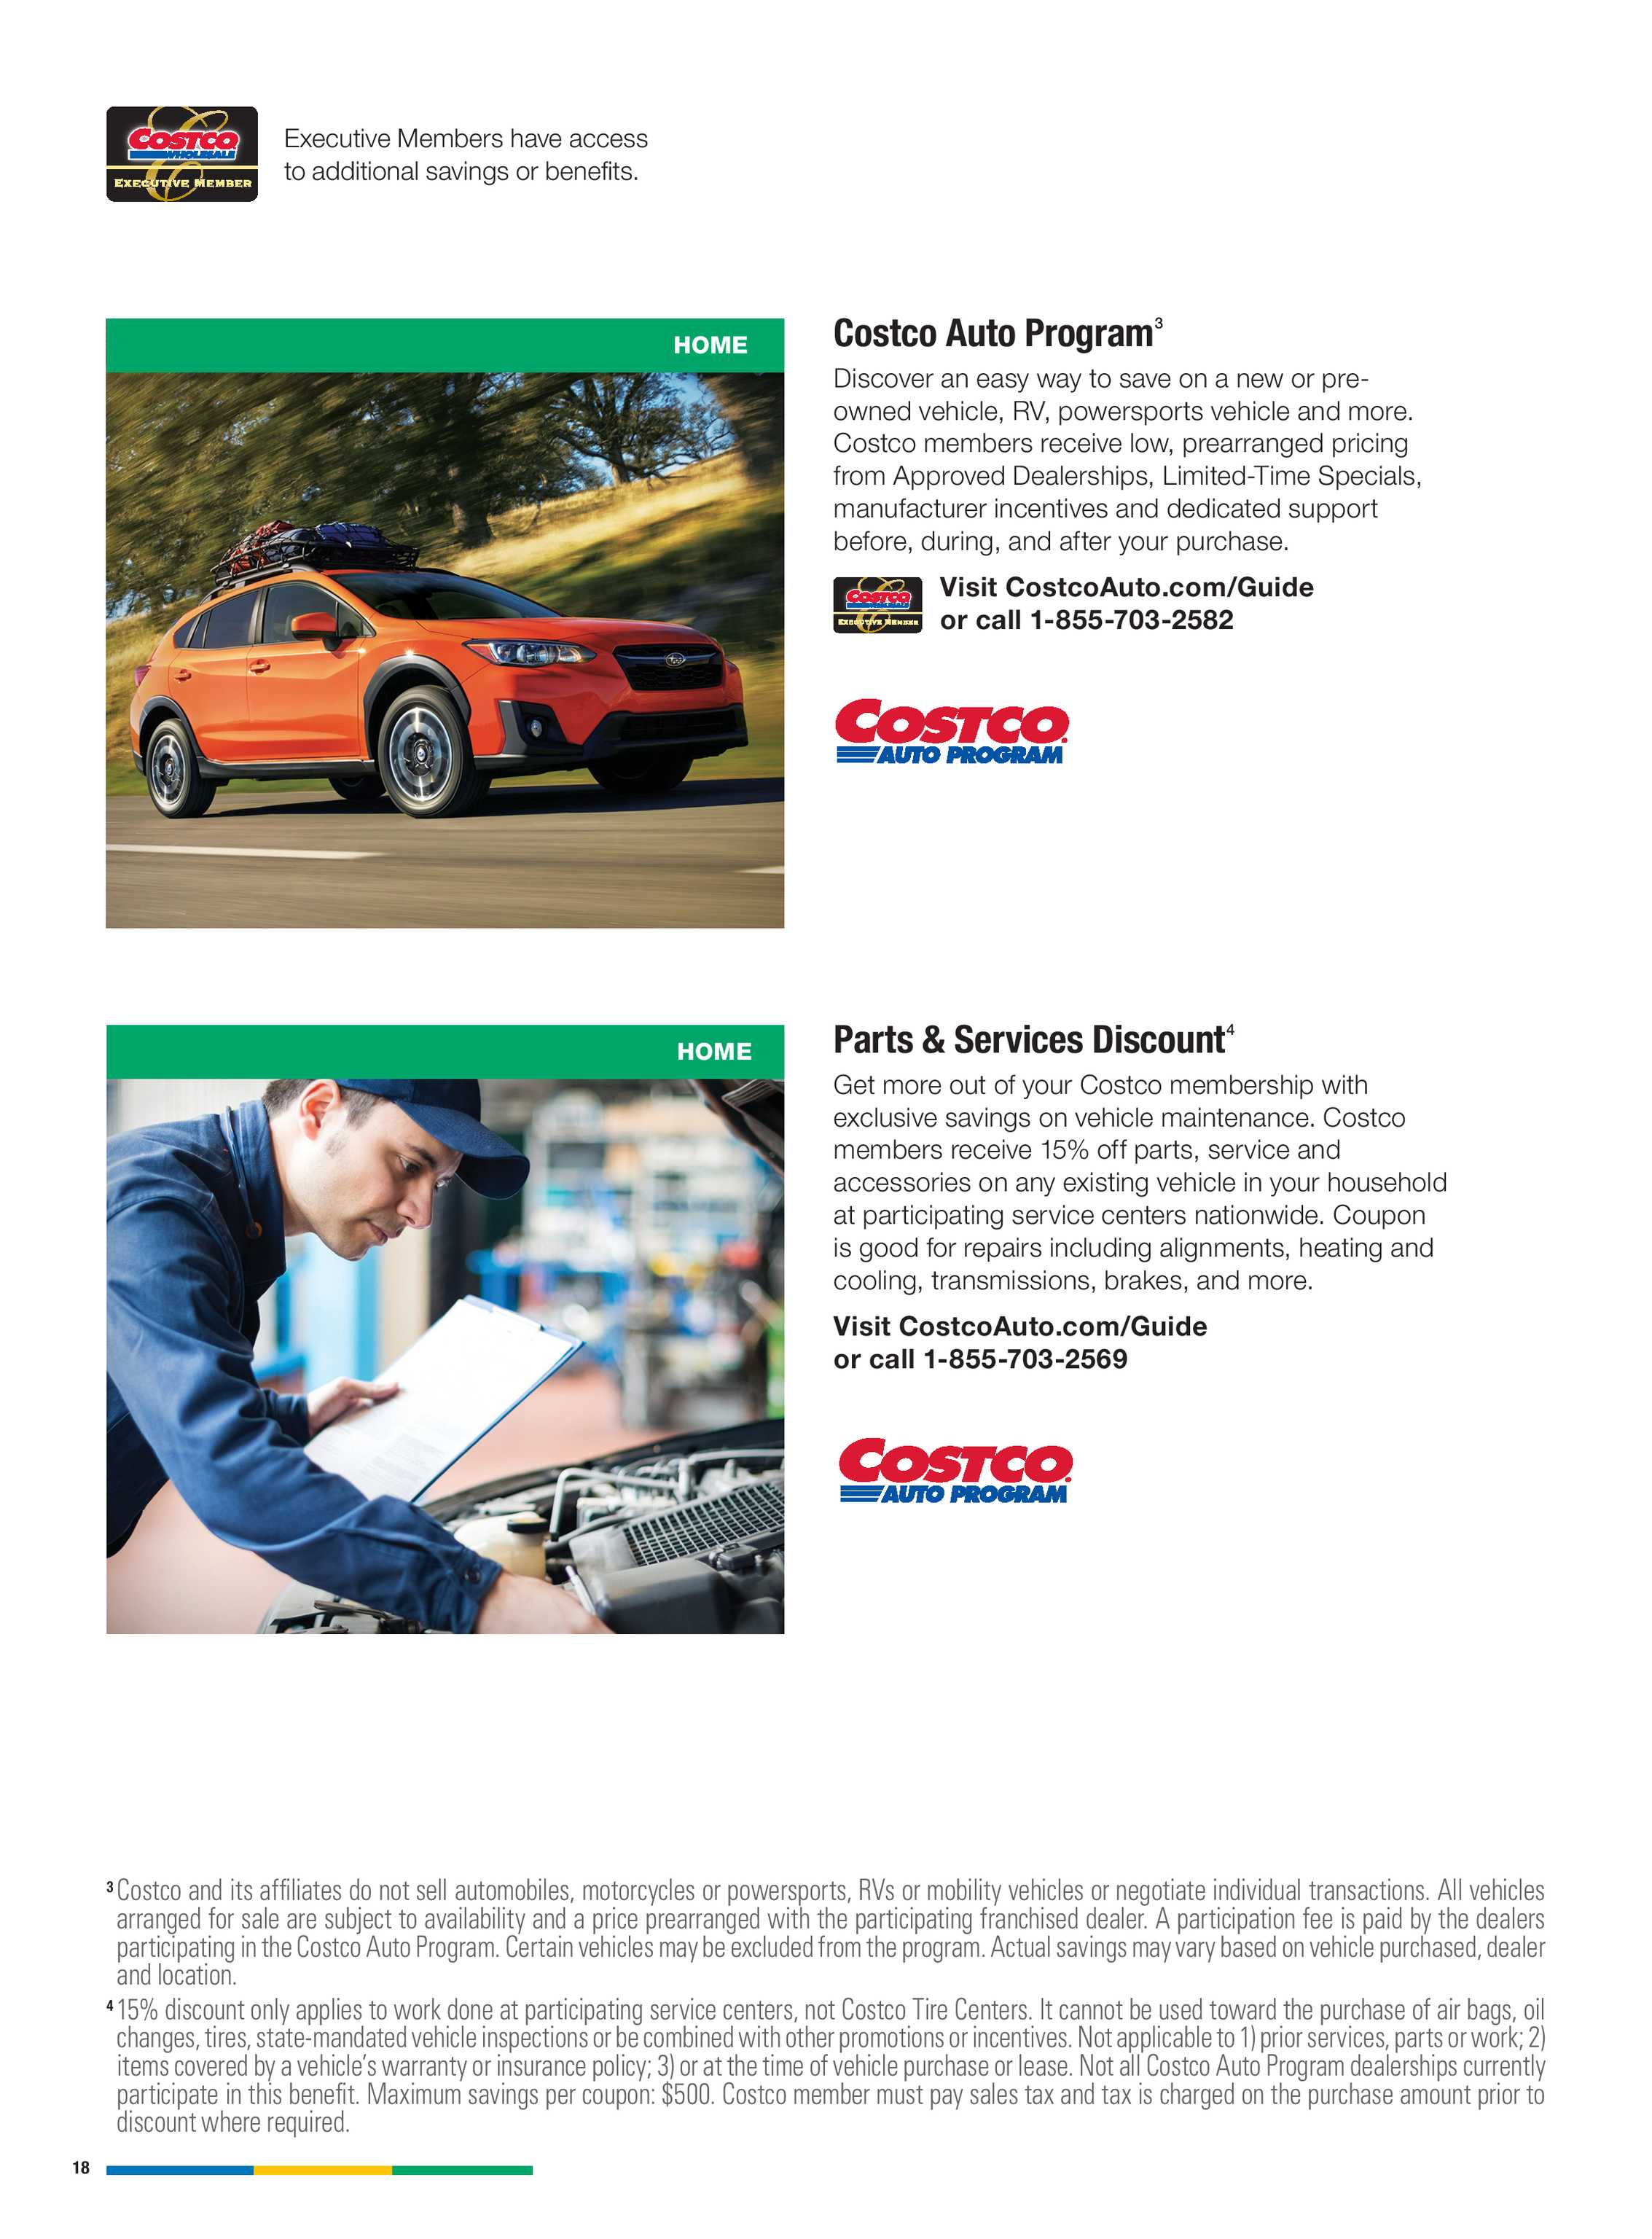 My Costco - Spring_2019 - page 18